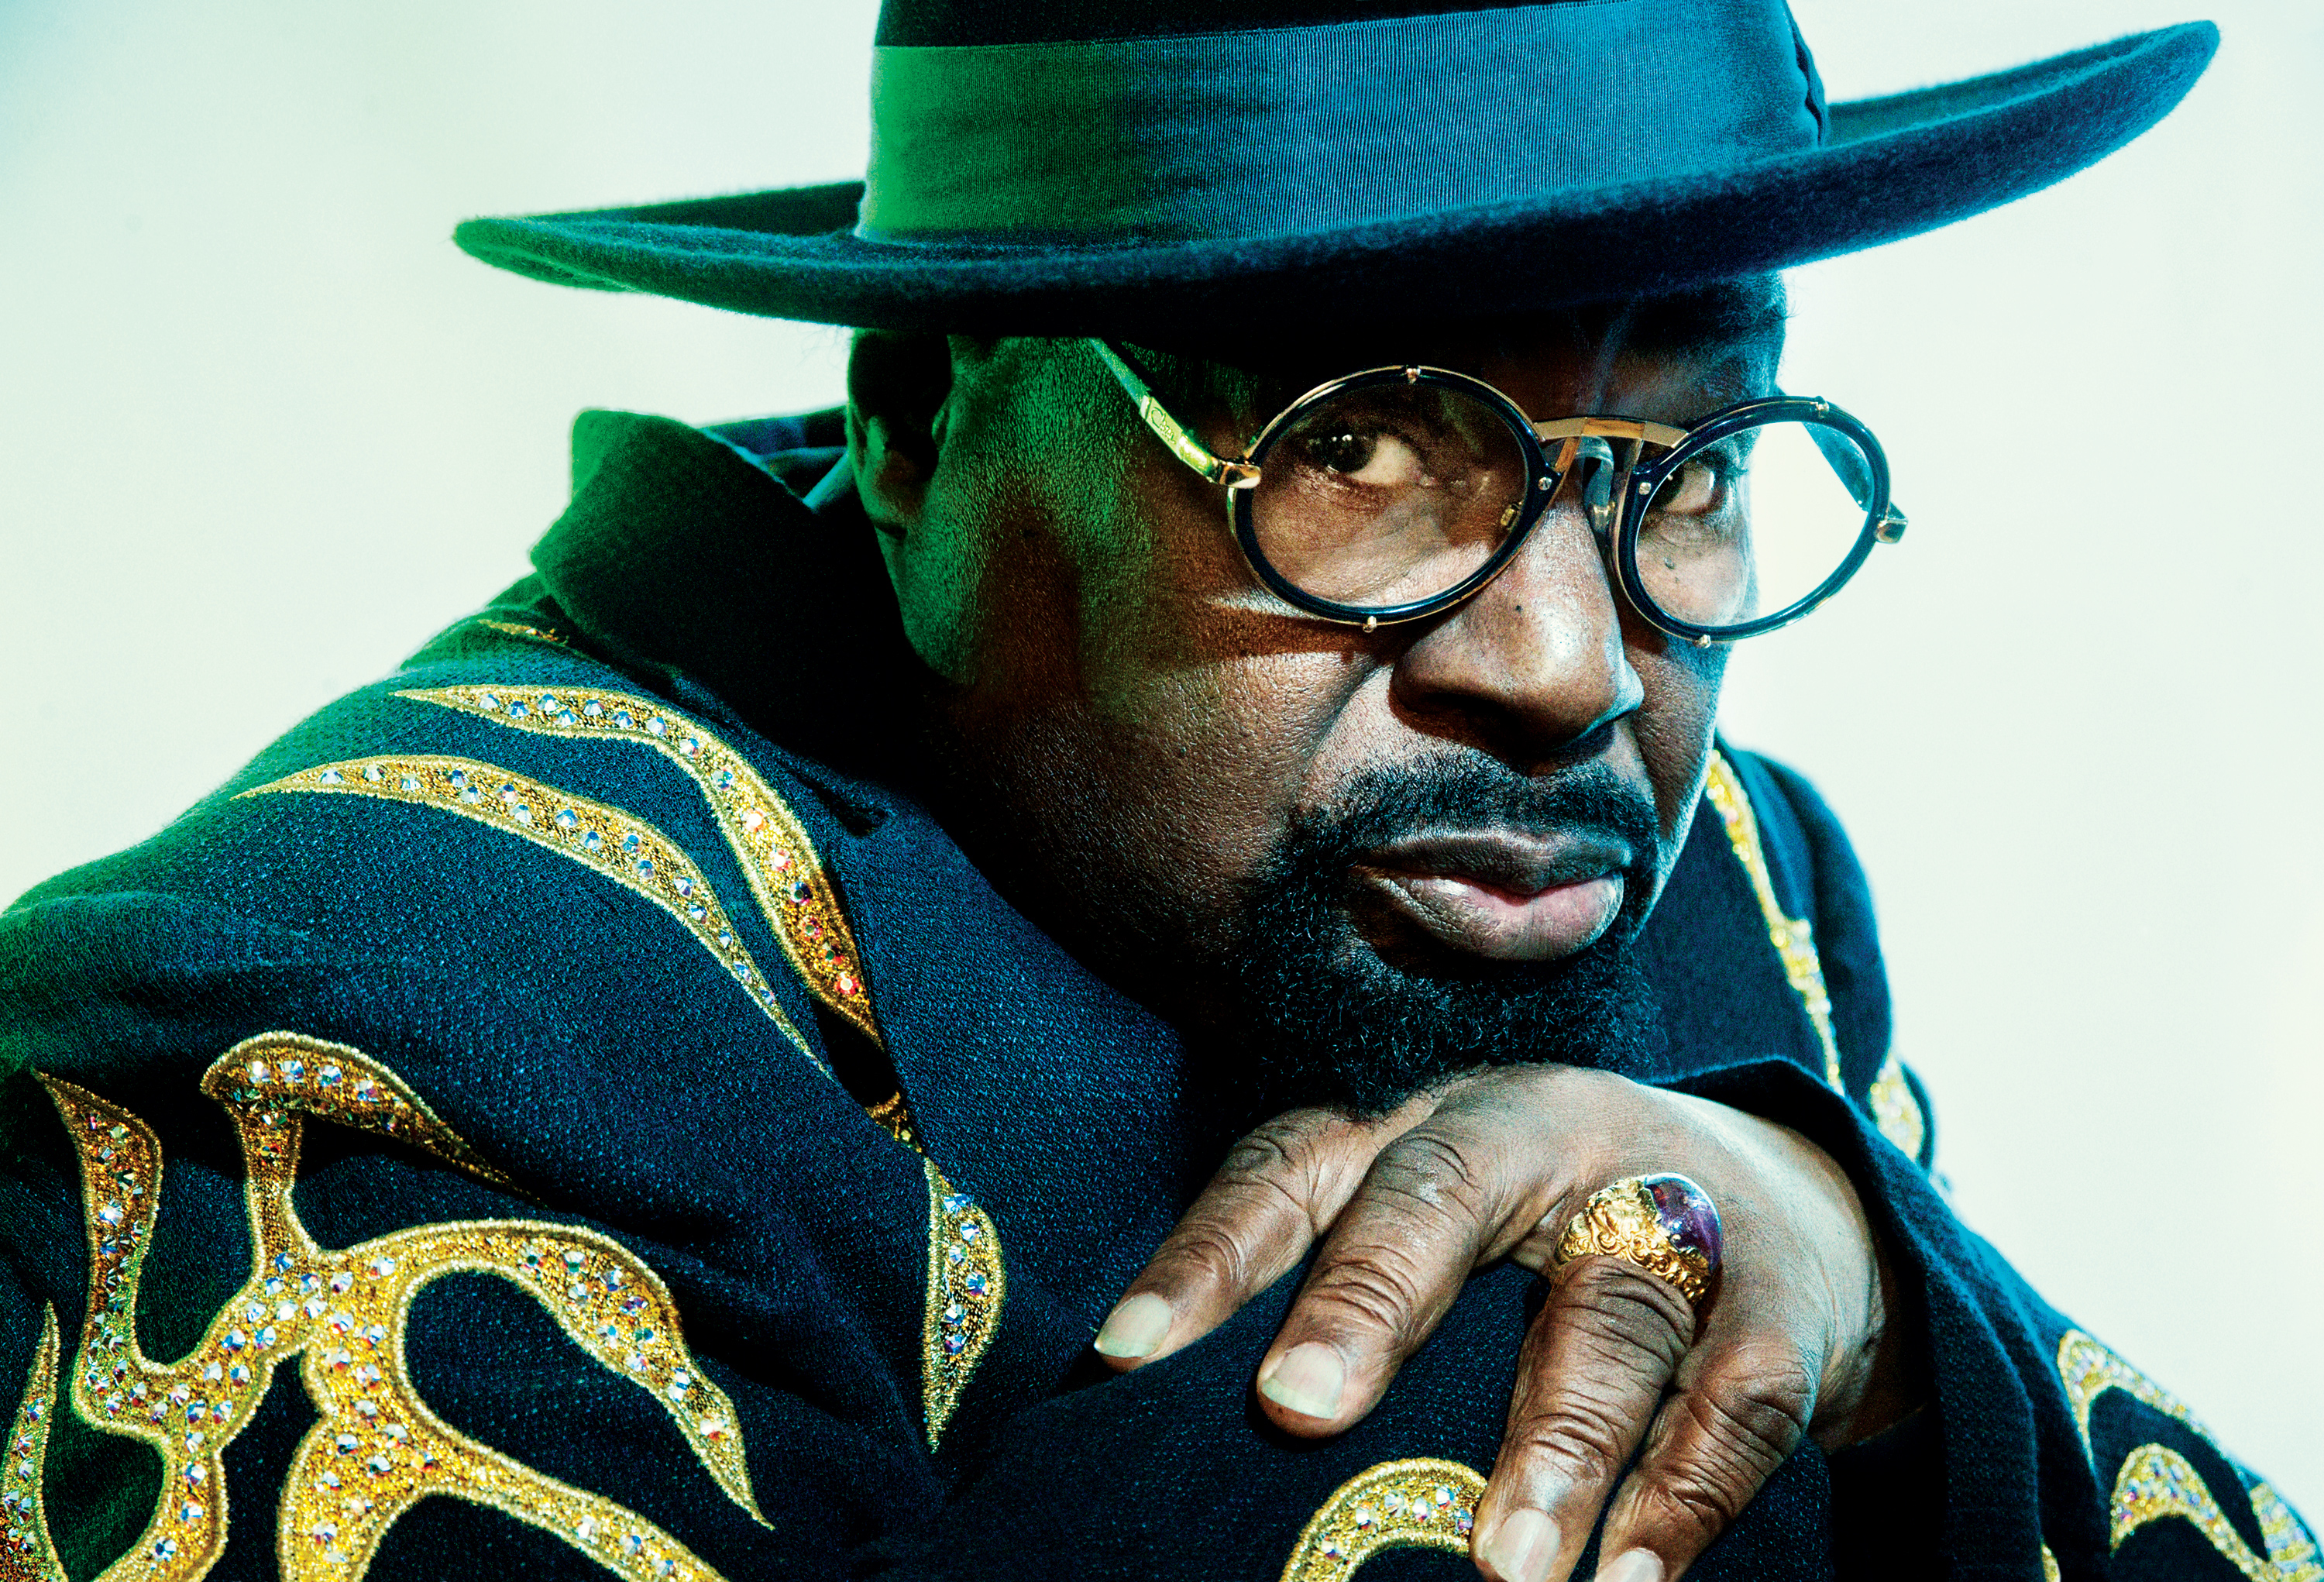 George Clinton Doctor Atomic Rolling Stone Reves Studio Cut Out Pin Stripe Shirt Blue Whenever Hes Not On The Road Likes To Spend At Least A Portion Of Each Day His Tallahassee Florida Recording